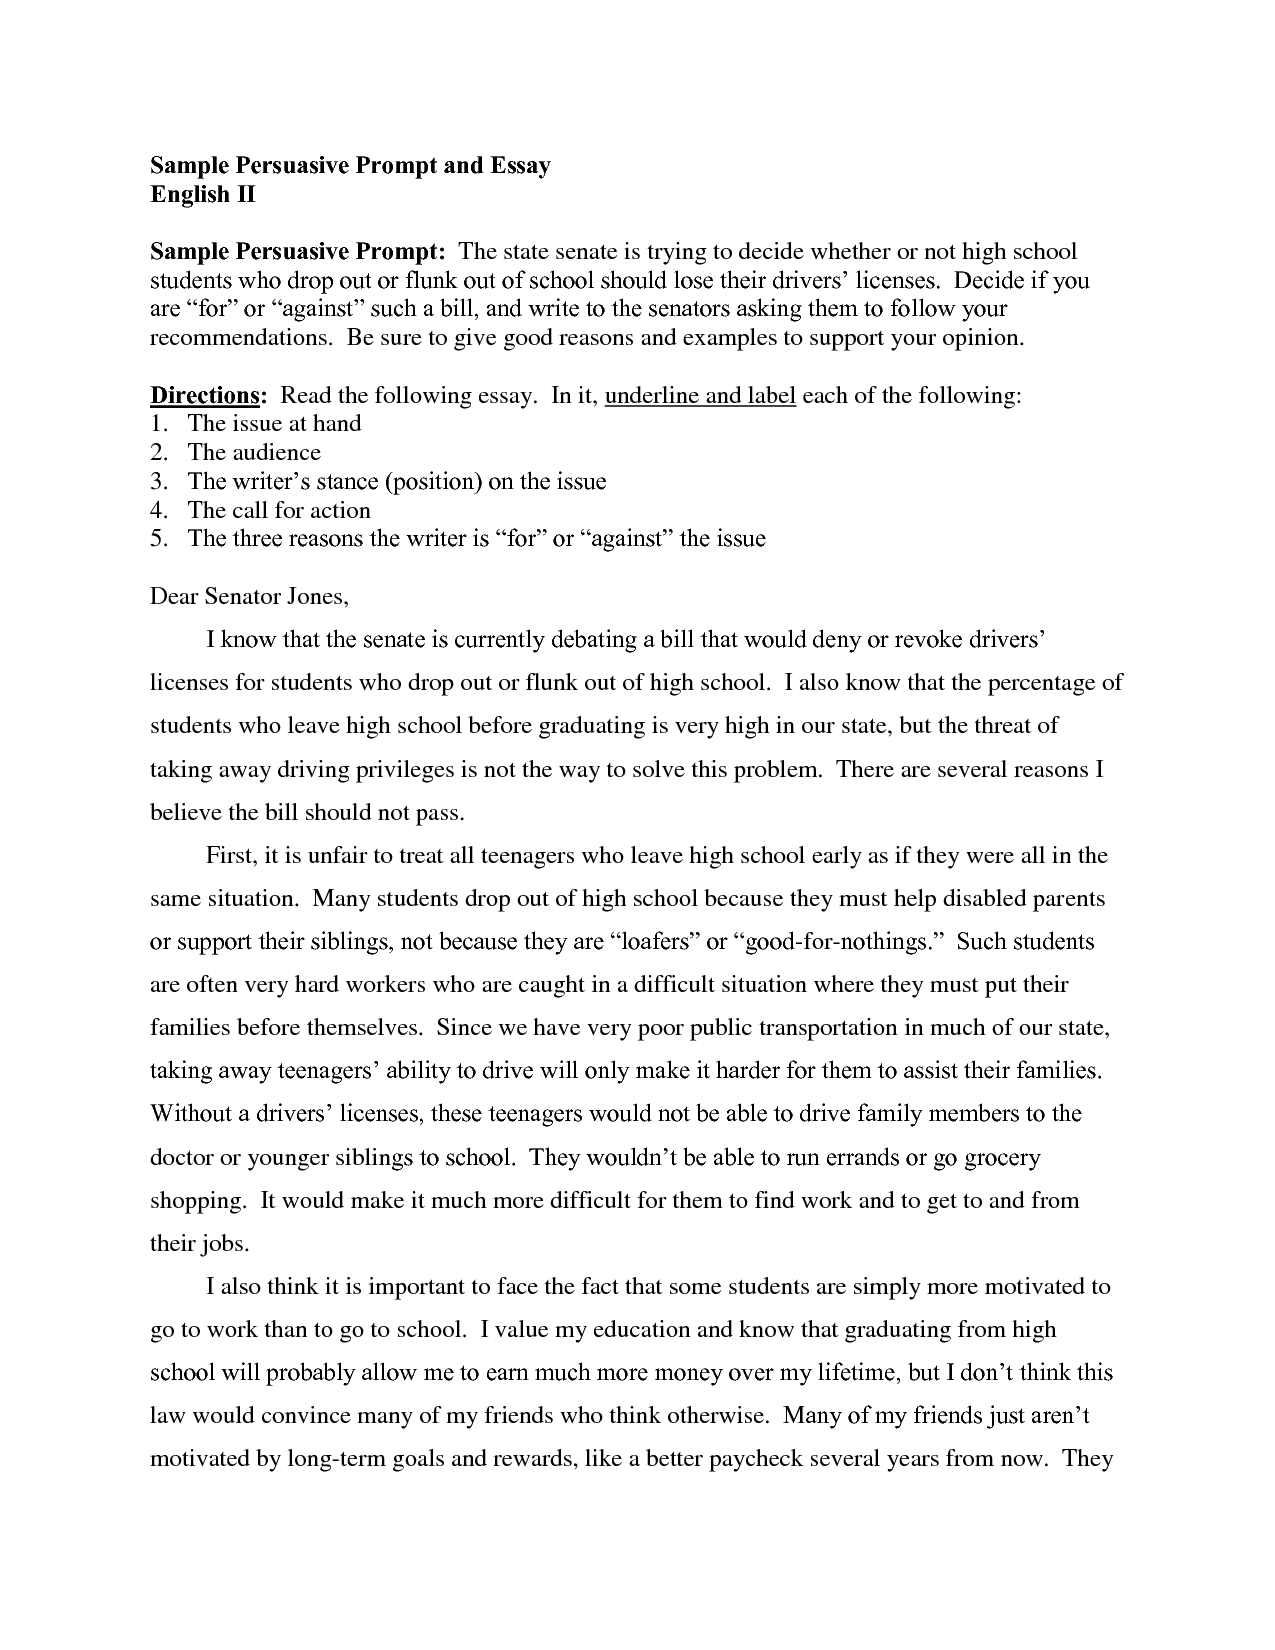 Essay About Learning English  Examples Of Argumentative Thesis Statements For Essays also How To Write Essay Papers  Example Of Good Persuasive Essay High School Topics  Argumentative Essay Thesis Example